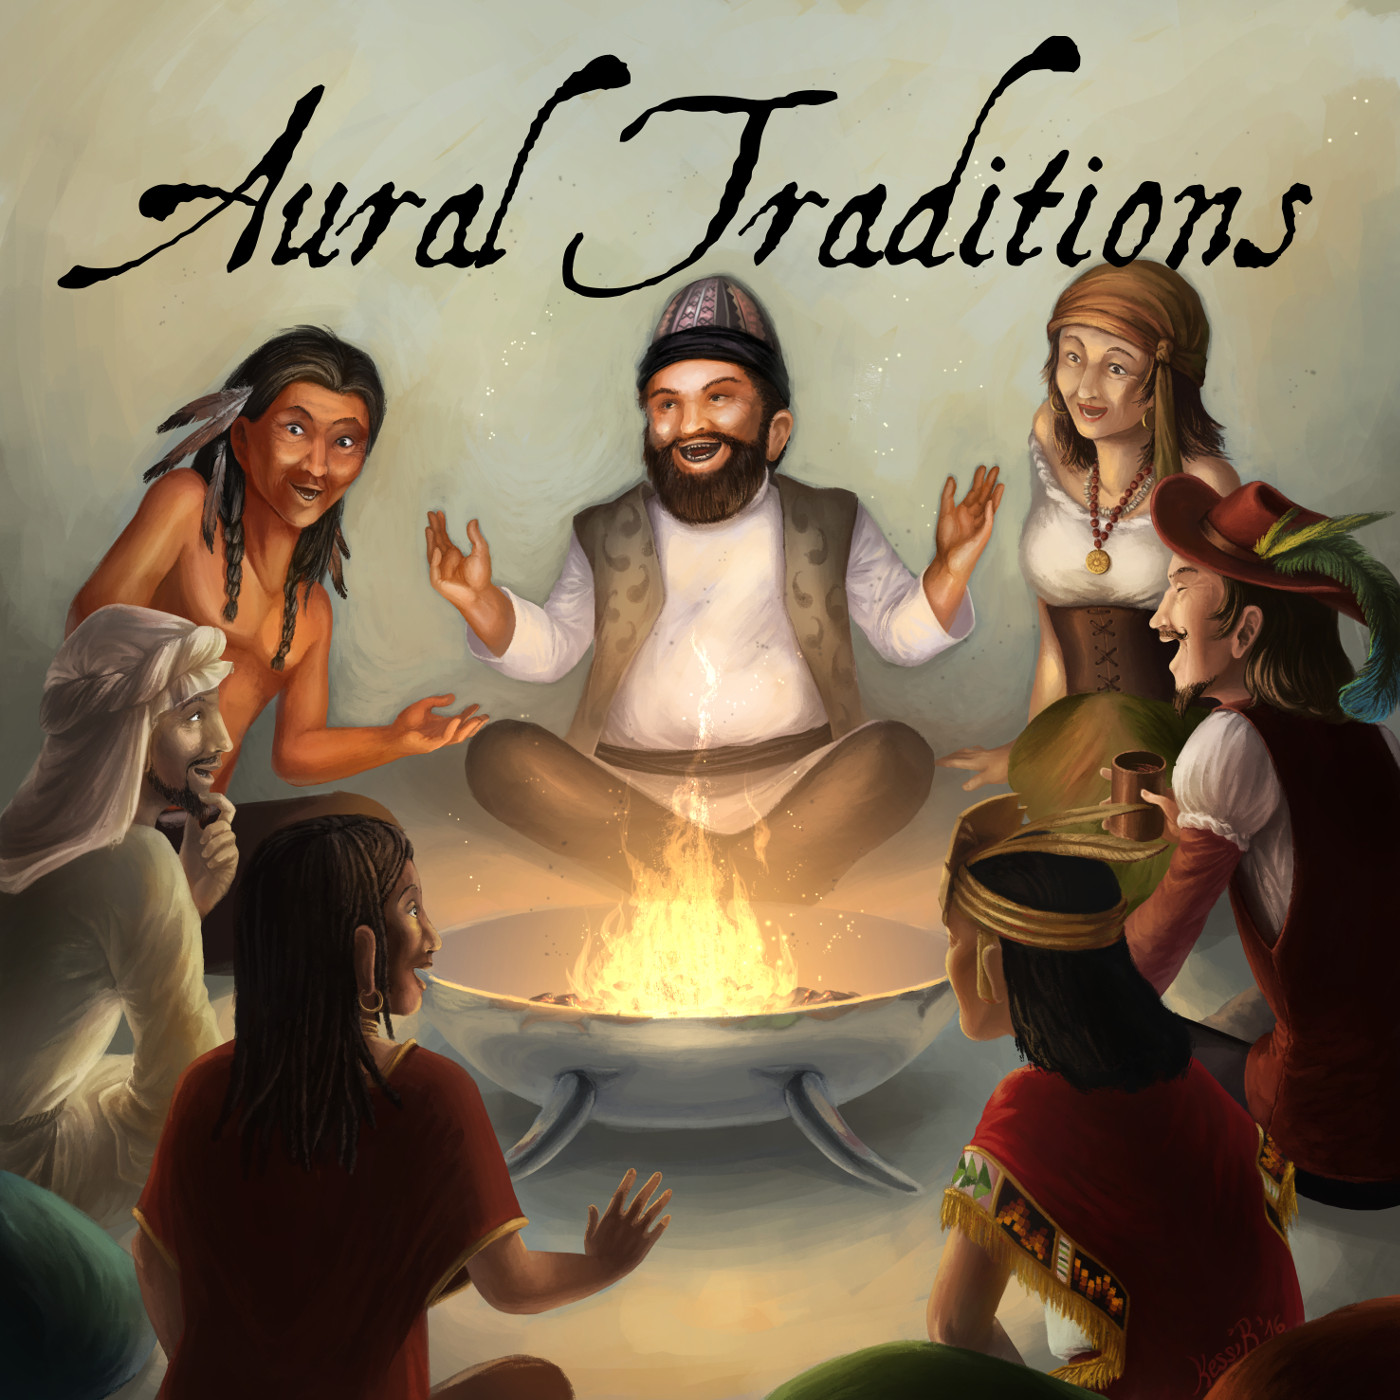 Aural Traditions - An anthology of audio drama stories